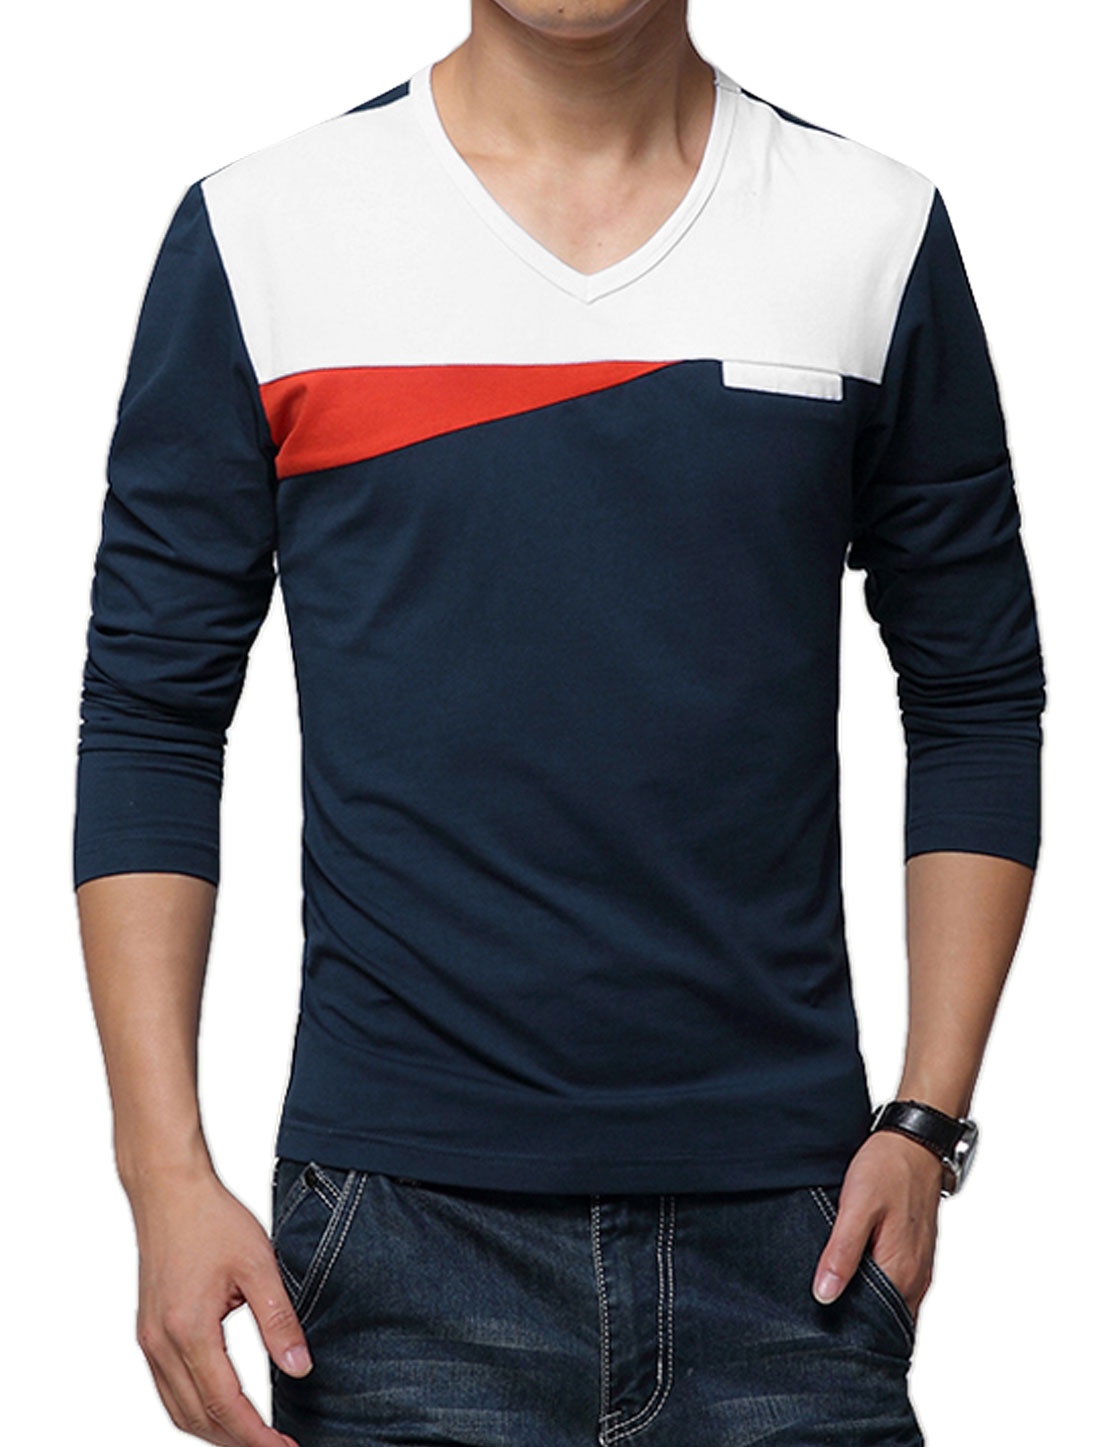 Men V Neck Long Sleeves Color Block Leisure T-Shirts Navy Blue White M